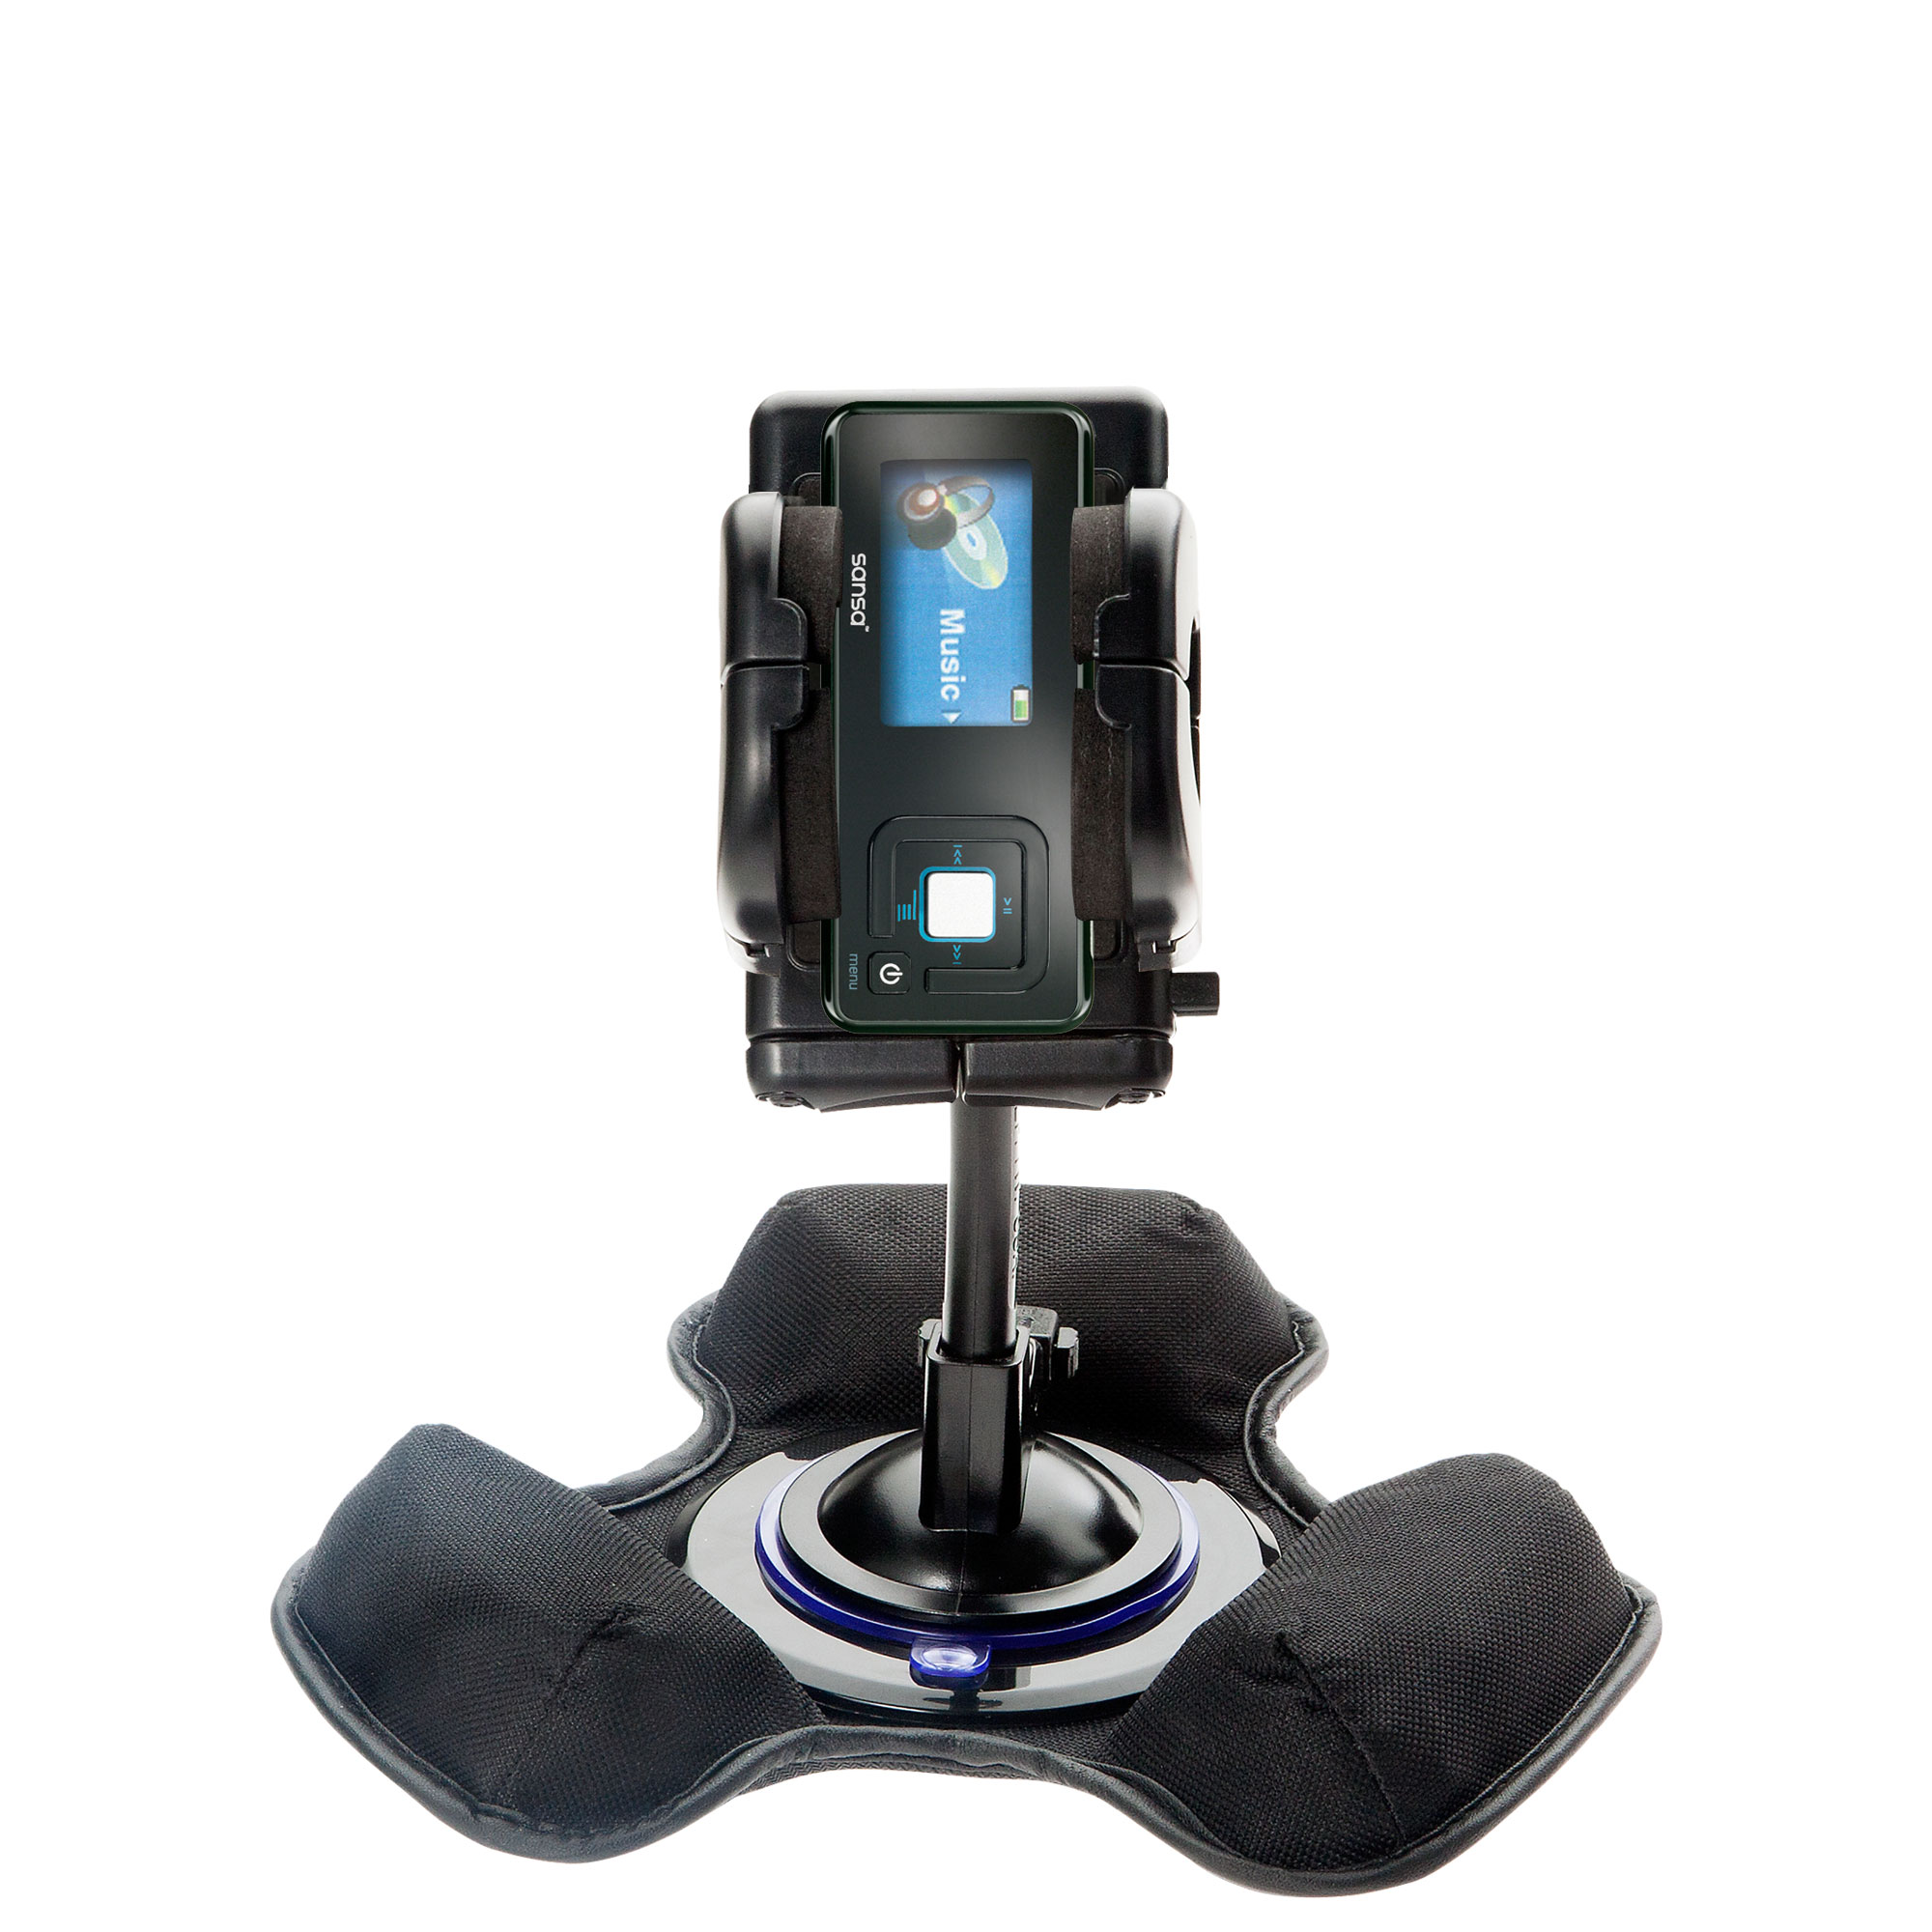 Dash and Windshield Holder compatible with the Sandisk Sansa c240